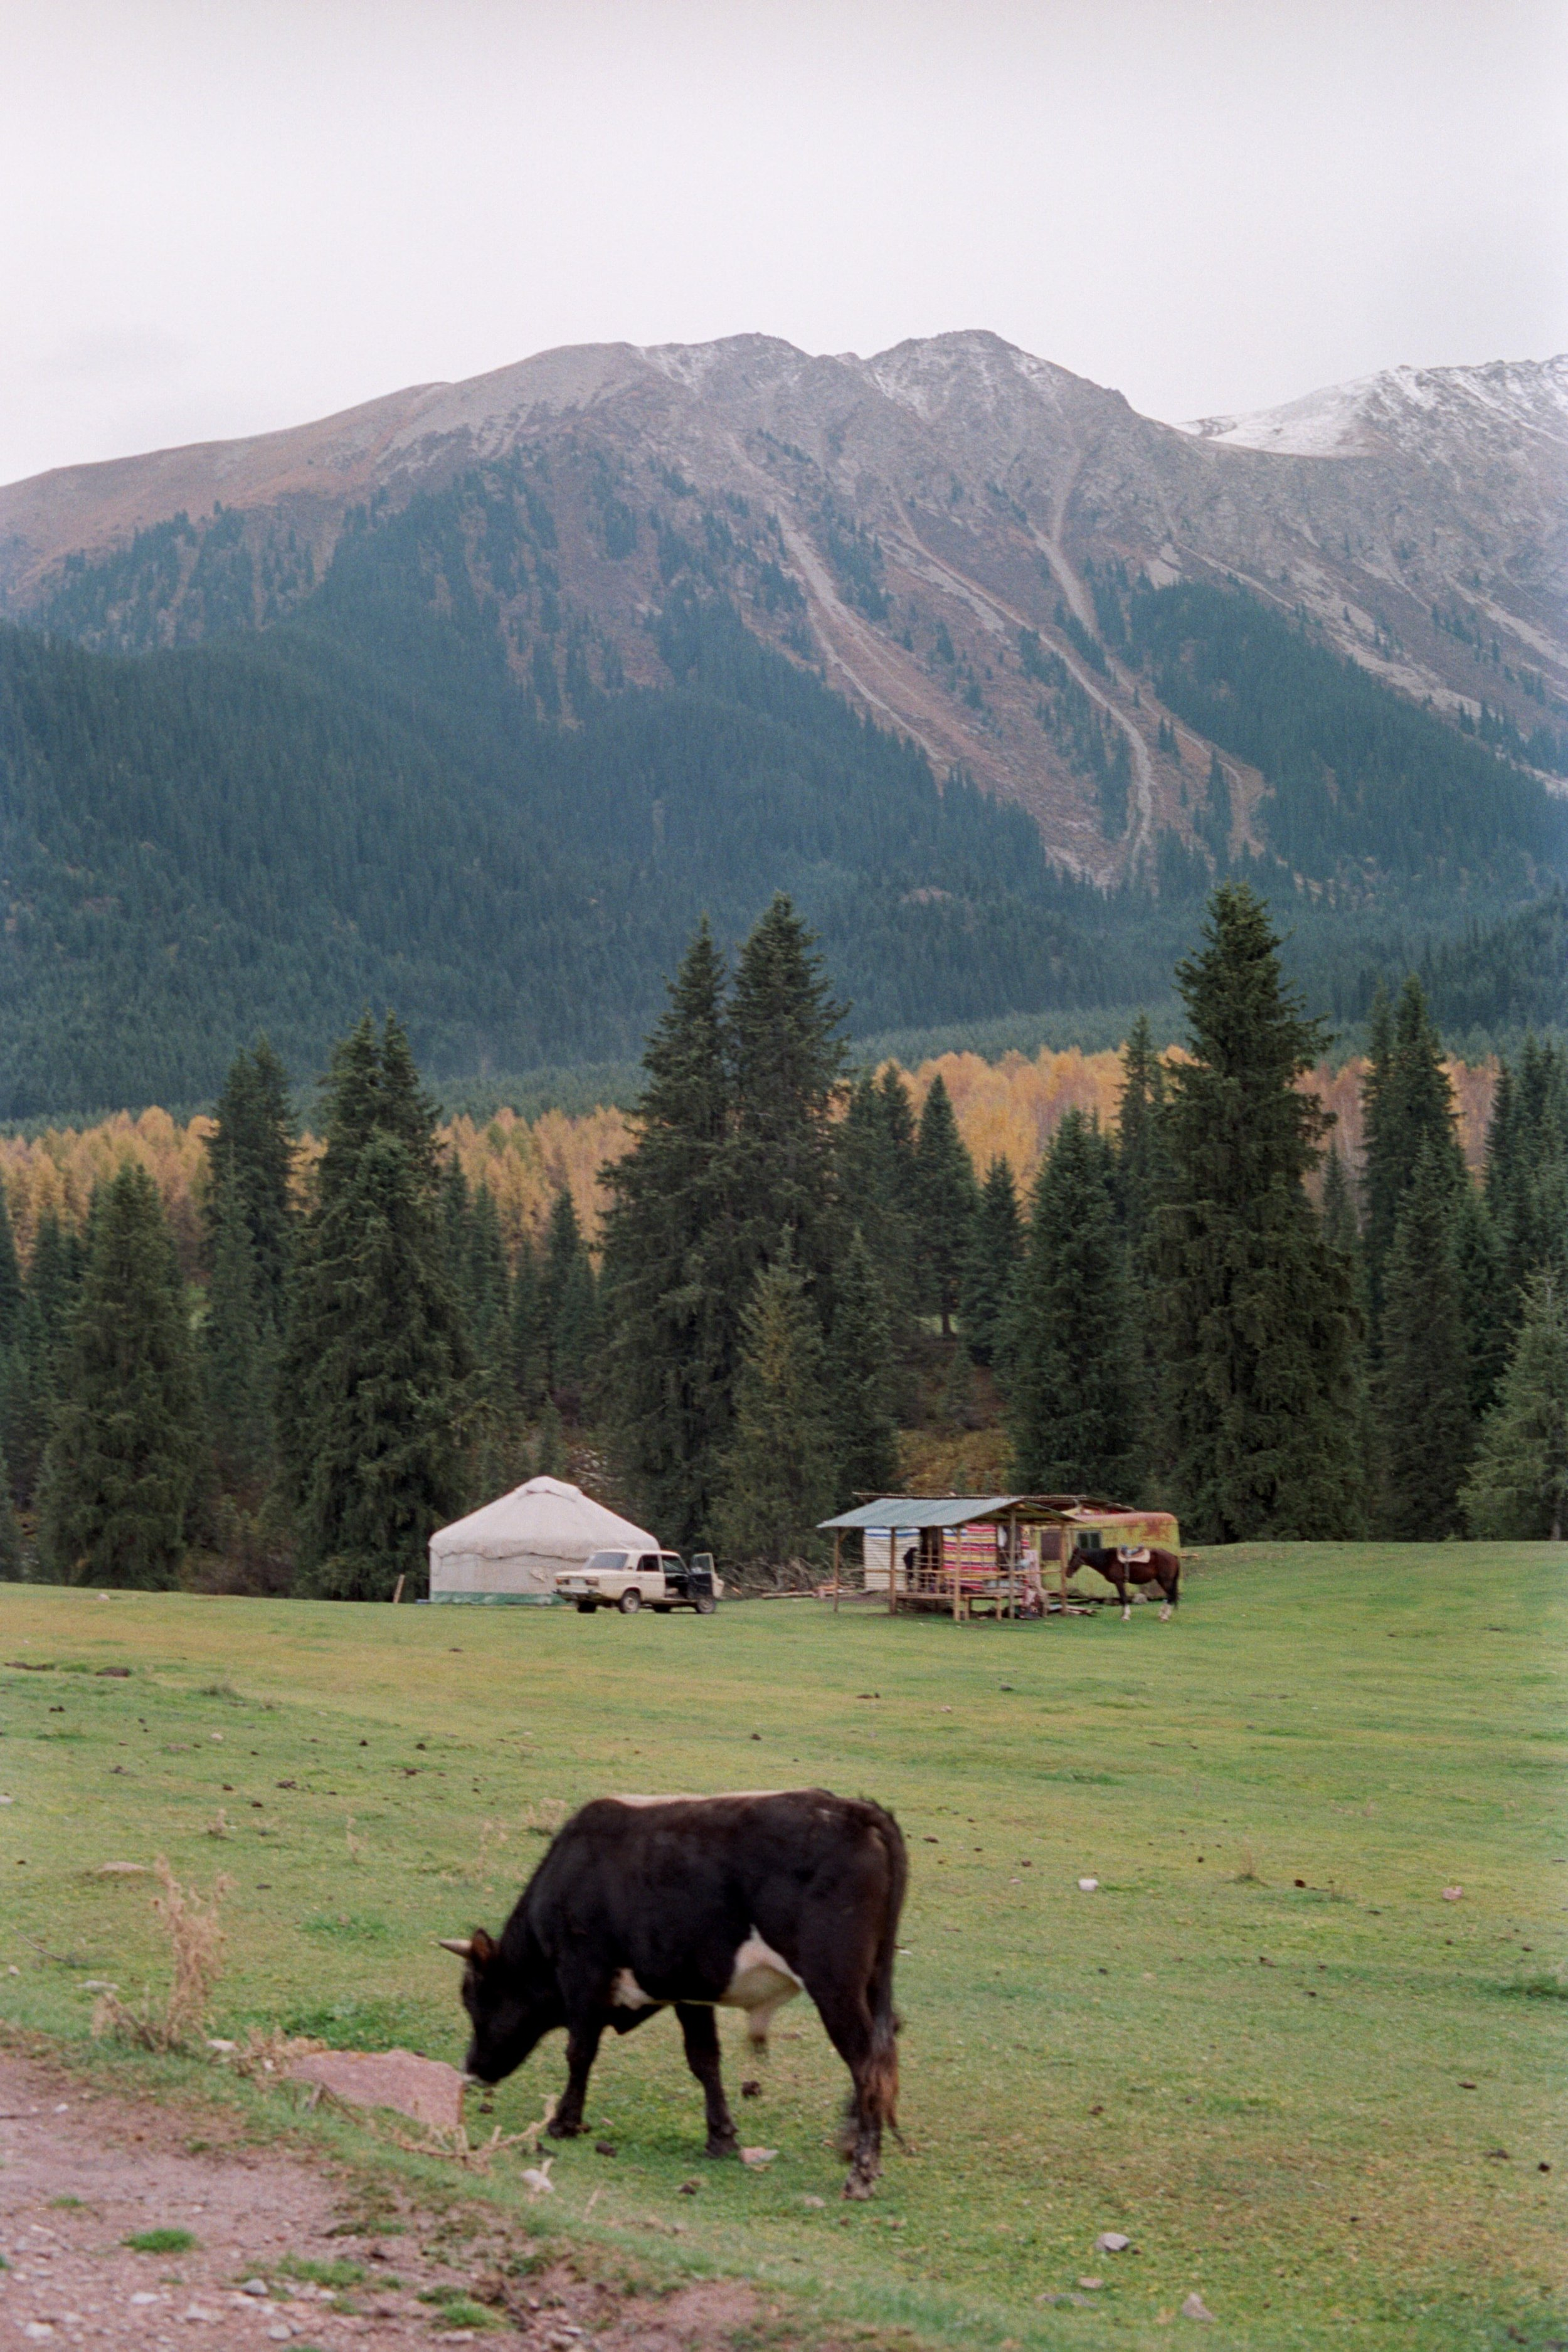 Cattle, yurts, and horses.